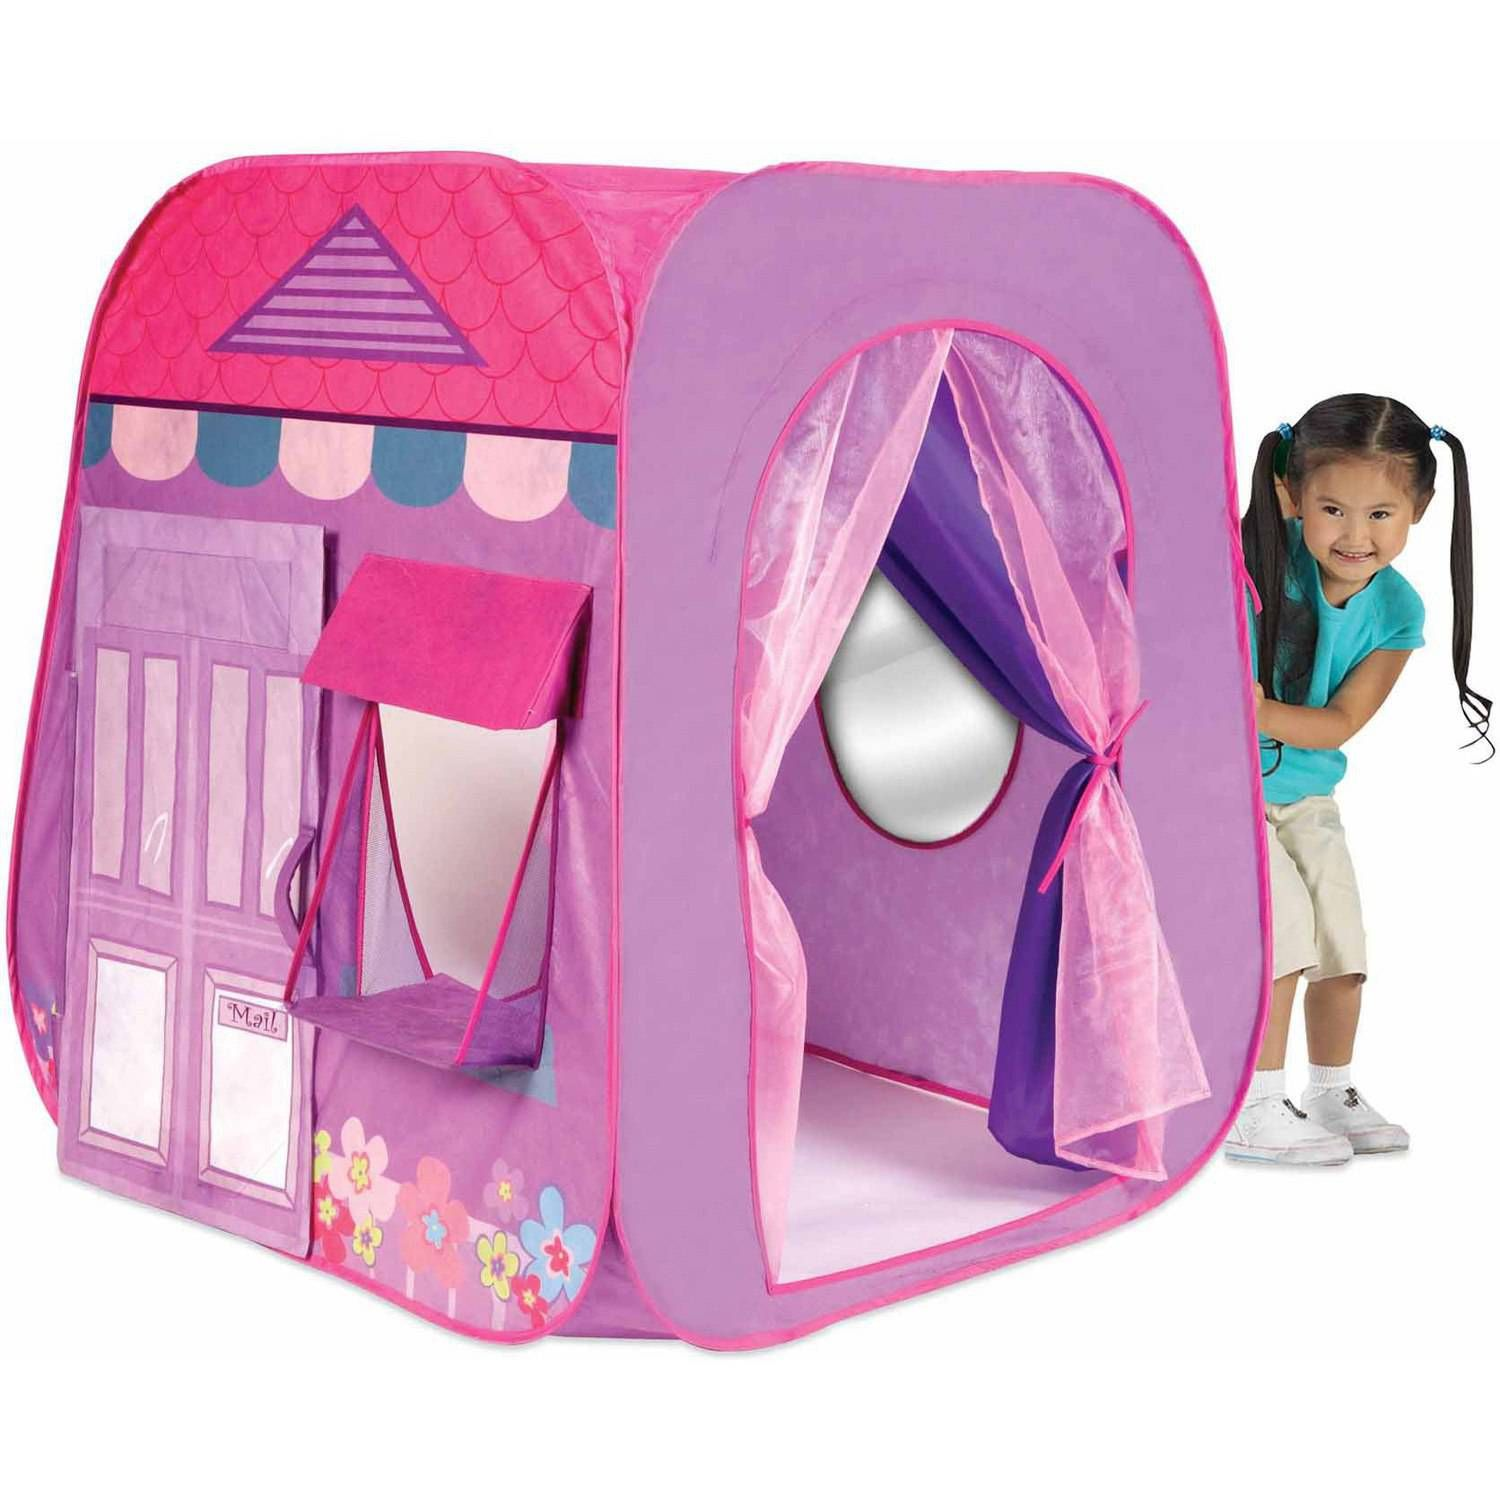 Playhut Disney Doc McStuffins 2-in-1 Tent - Walmart.com  sc 1 st  Pinterest : kid tents at walmart - memphite.com